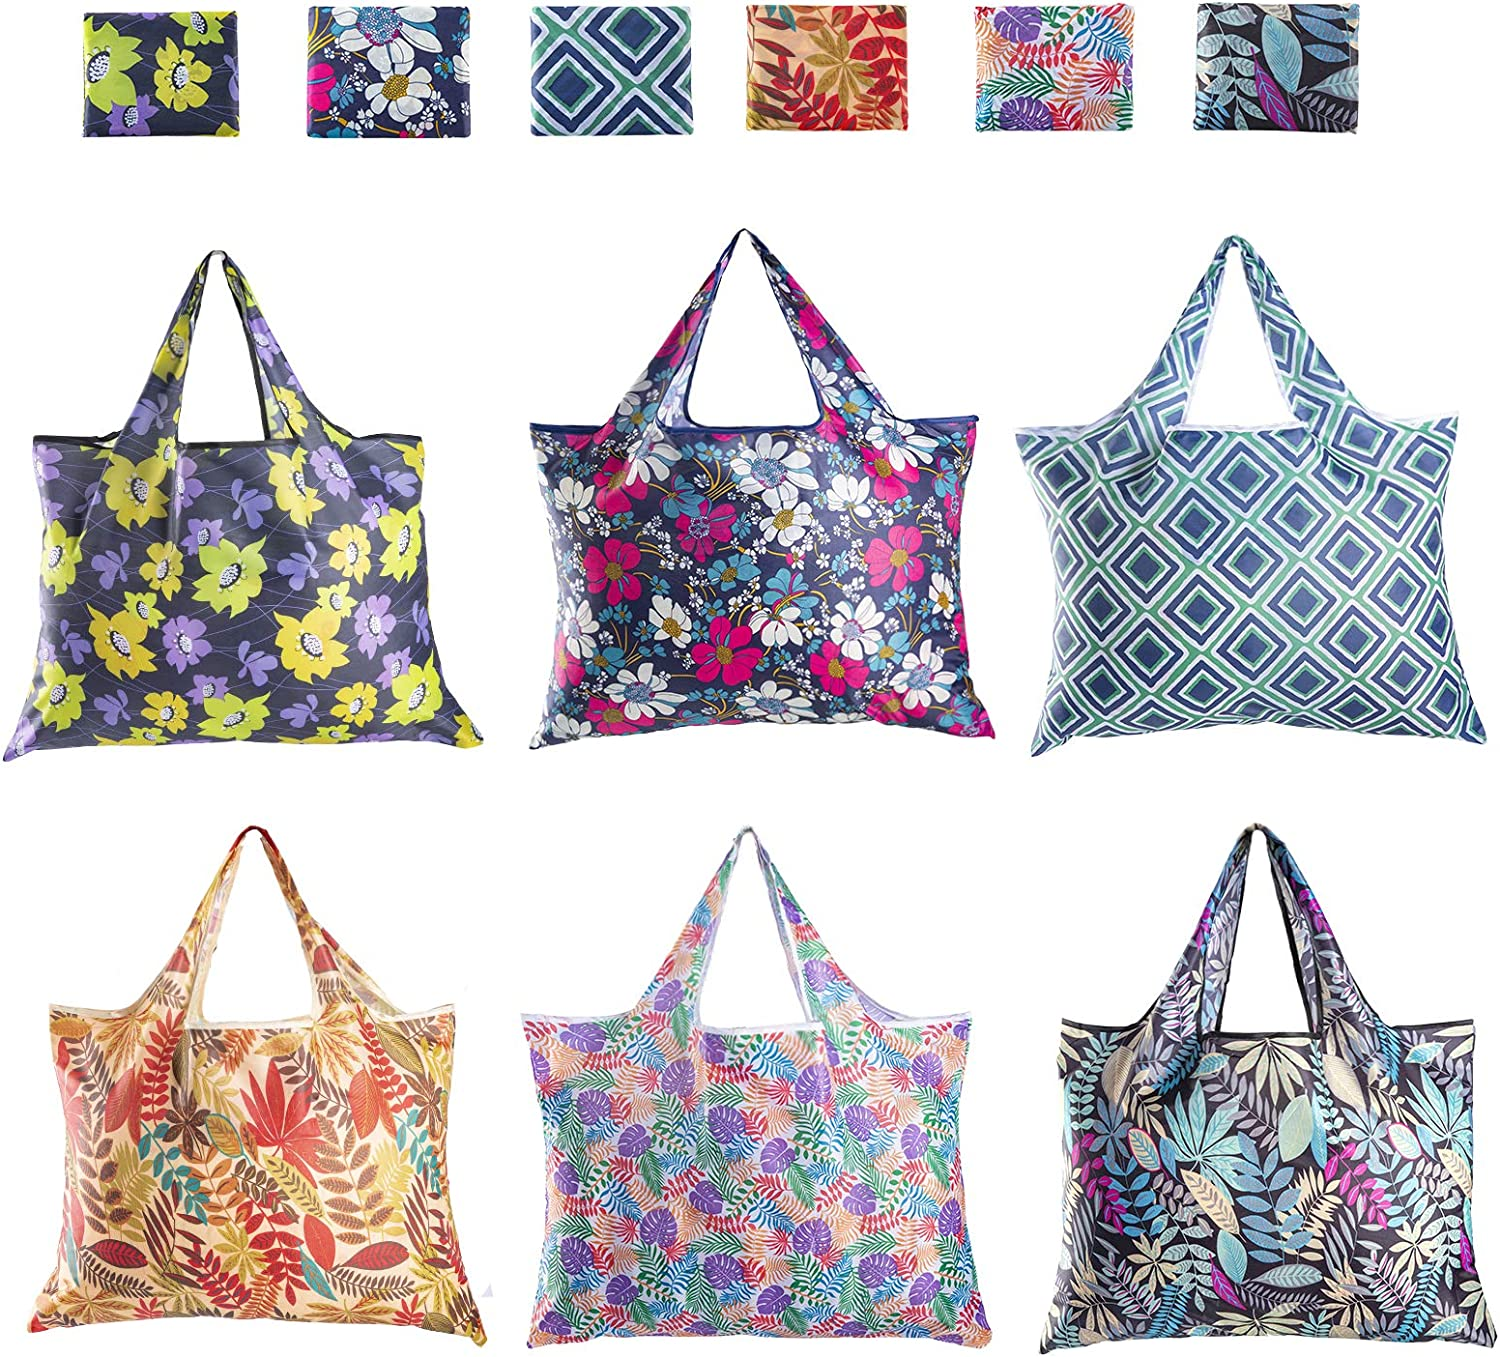 Reusable Grocery Bags,HC STAR 6 Pack Eco Friendly Large Foldable Grocery Tote Bag Heavy Duty Washable Shopping Bags/Eco-Friendly Purse Bag/Folding Bags